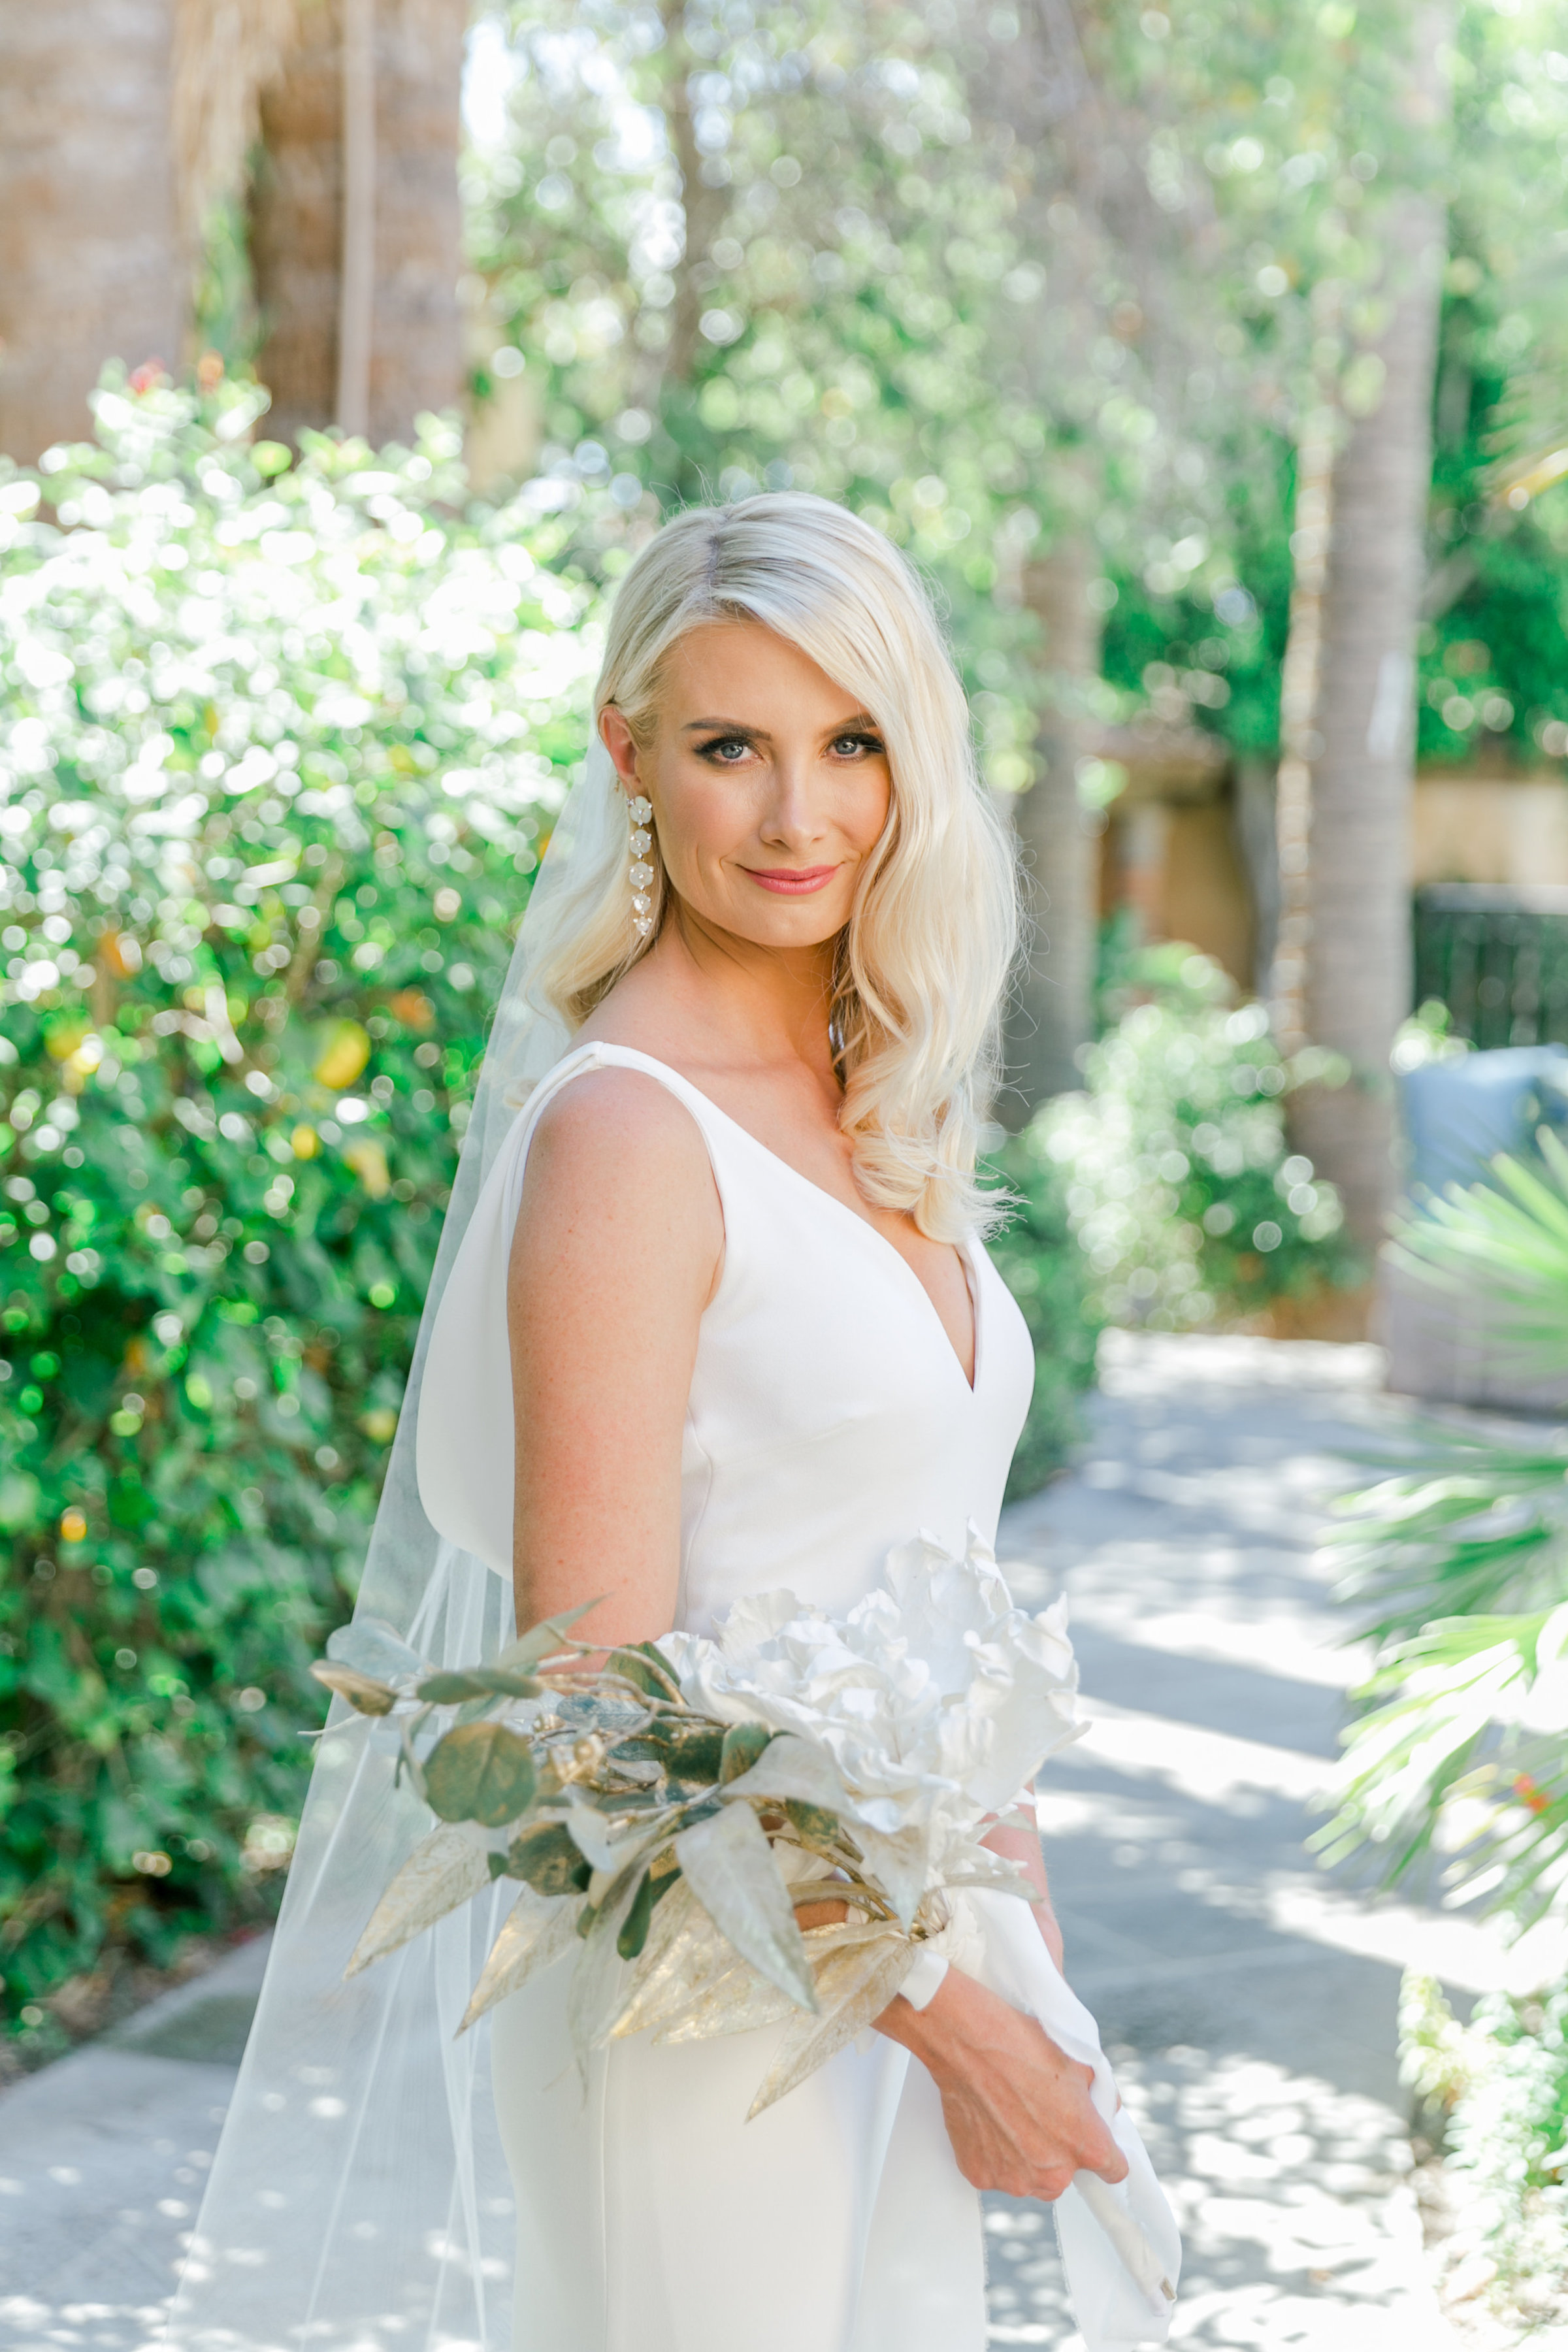 Karlie Colleen Photography - Arizona Wedding - Royal Palms Resort- Alex & Alex-34